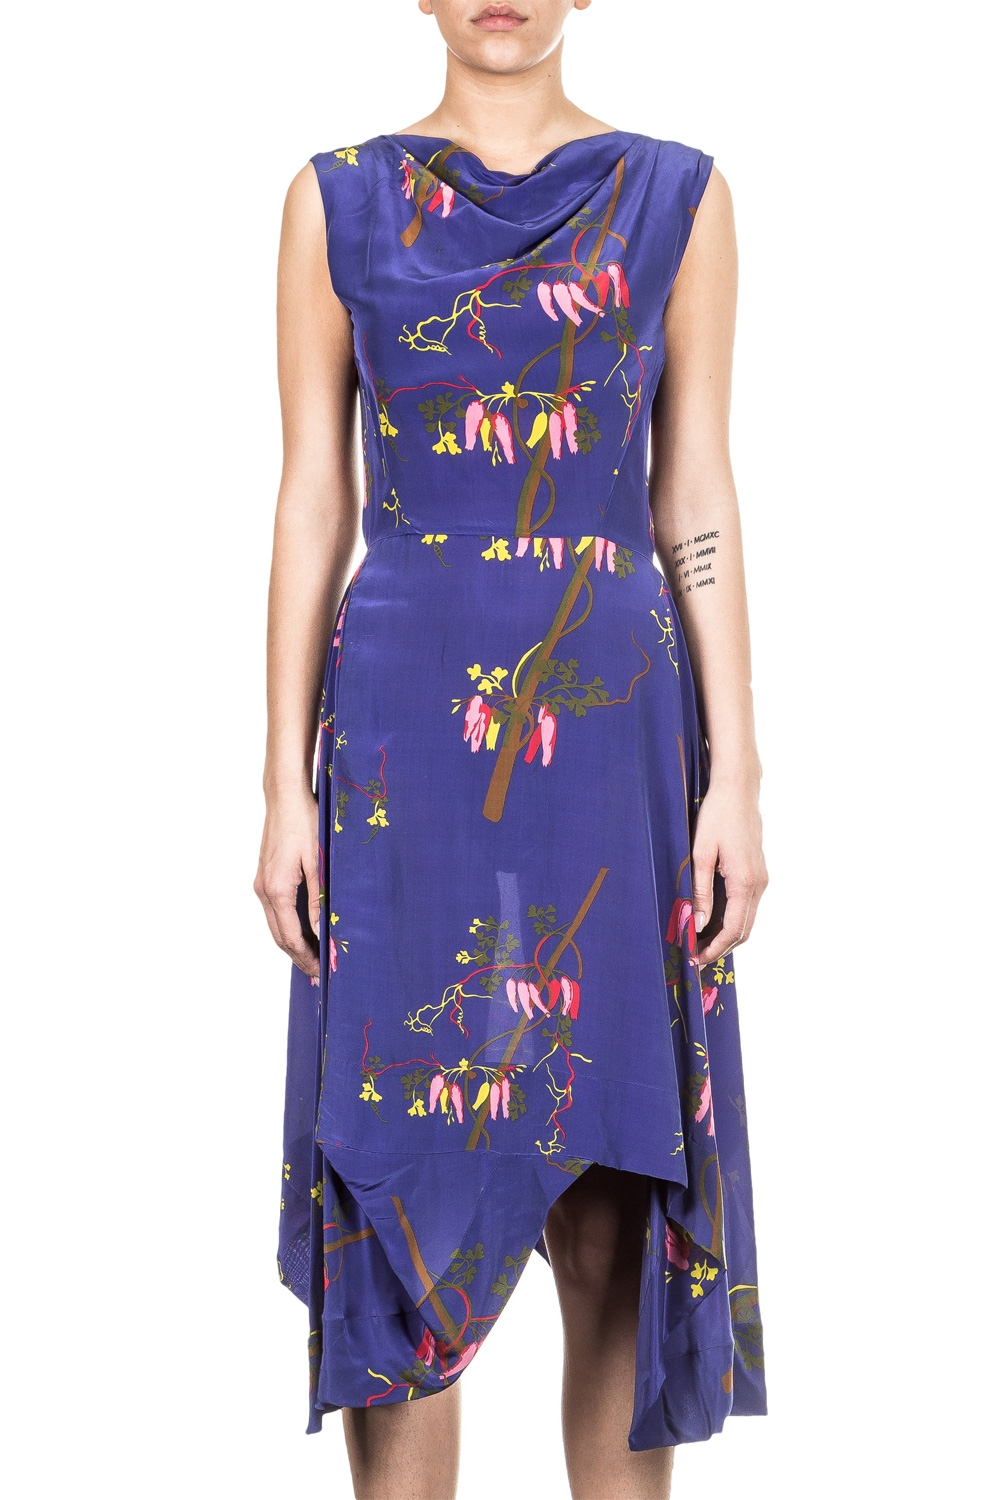 Vivienne Westwood Kleid AZTEK DRESS multicolour